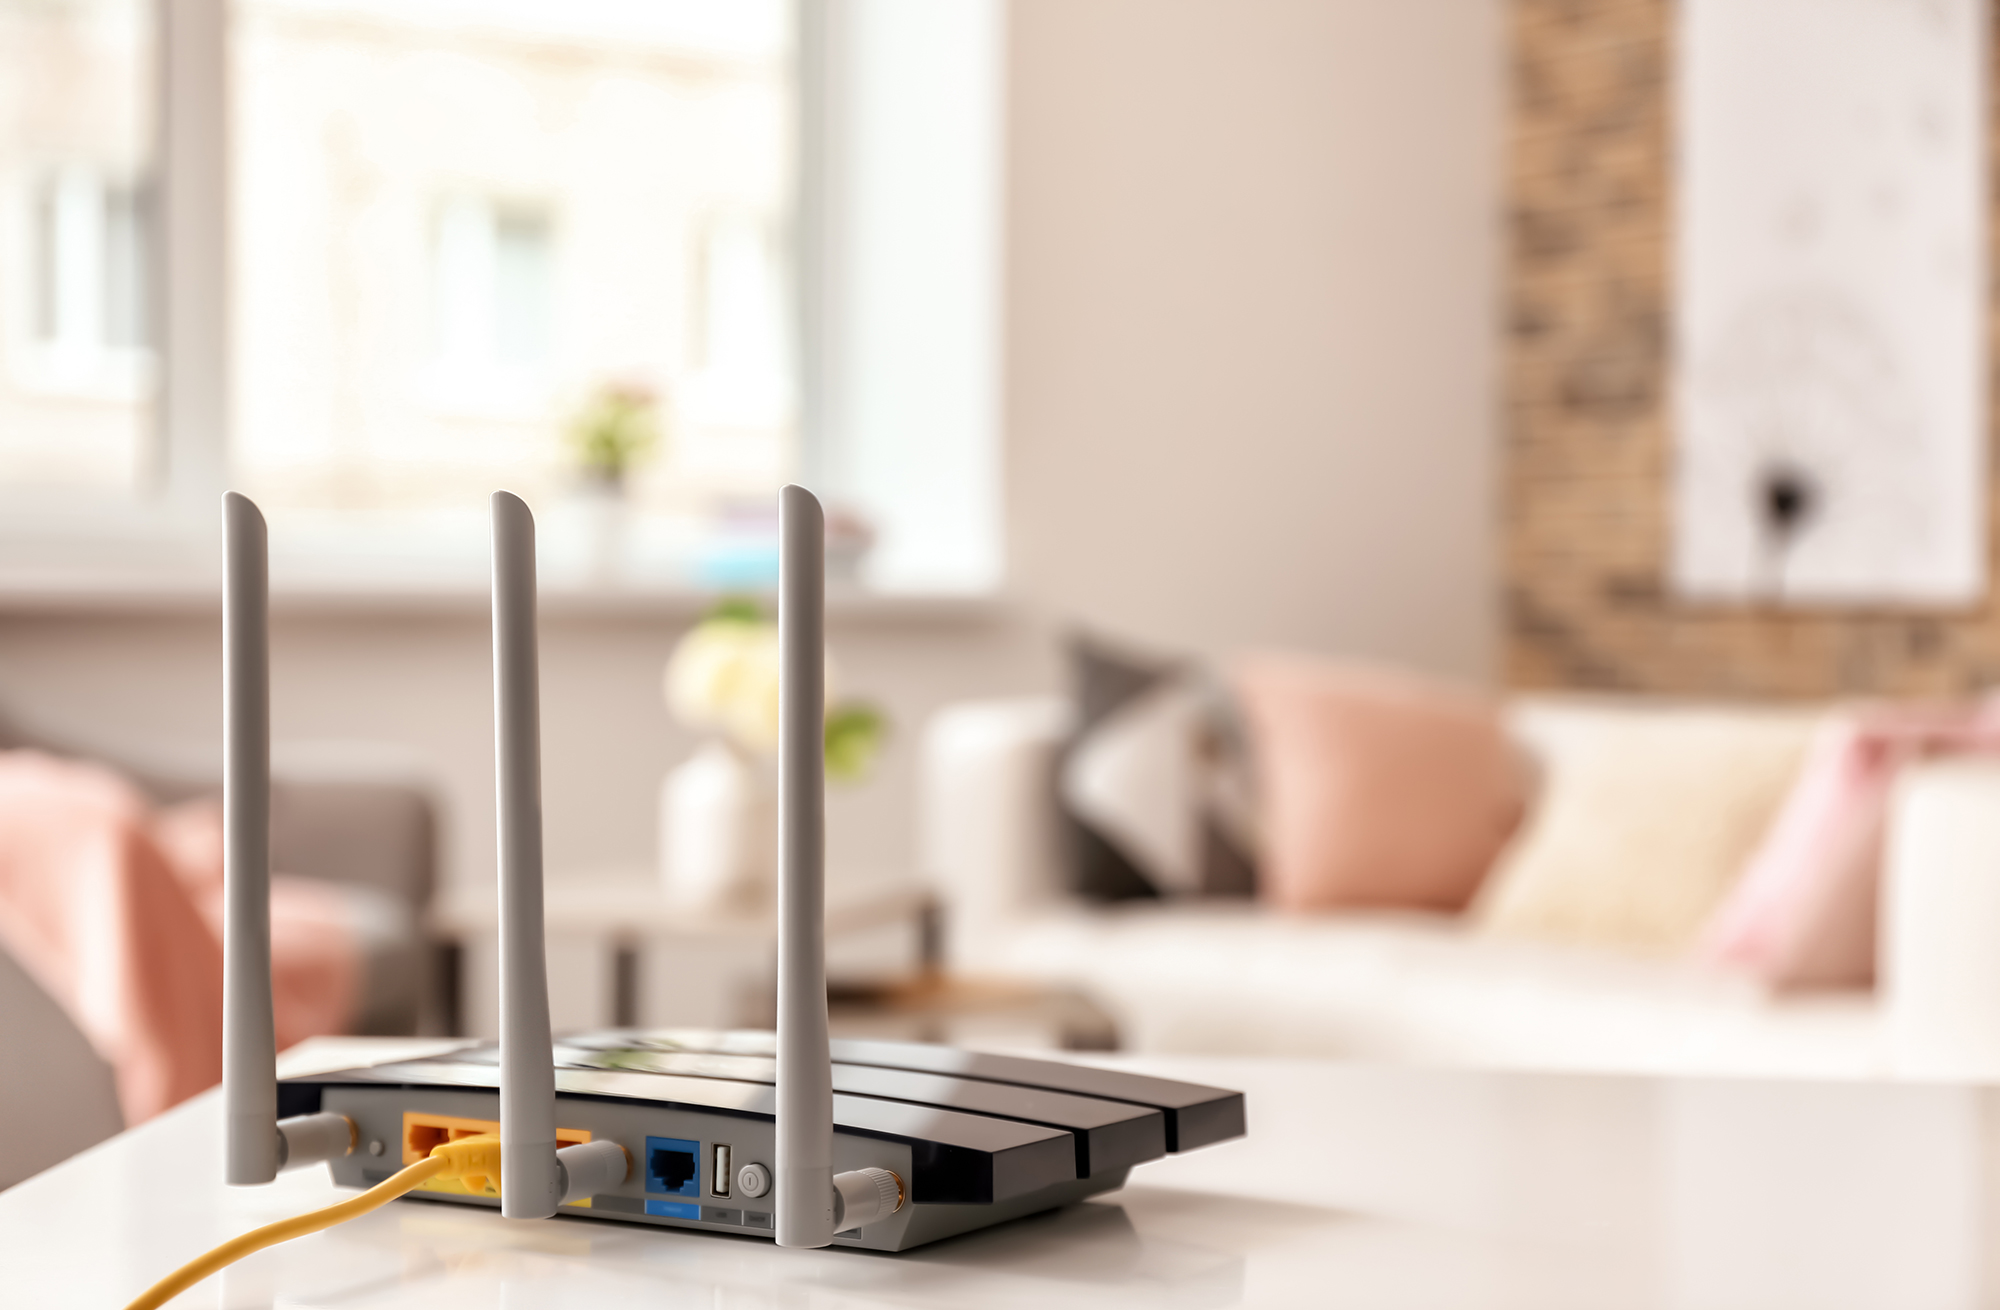 What will your broadband provider offer you? (Image: Shutterstock)